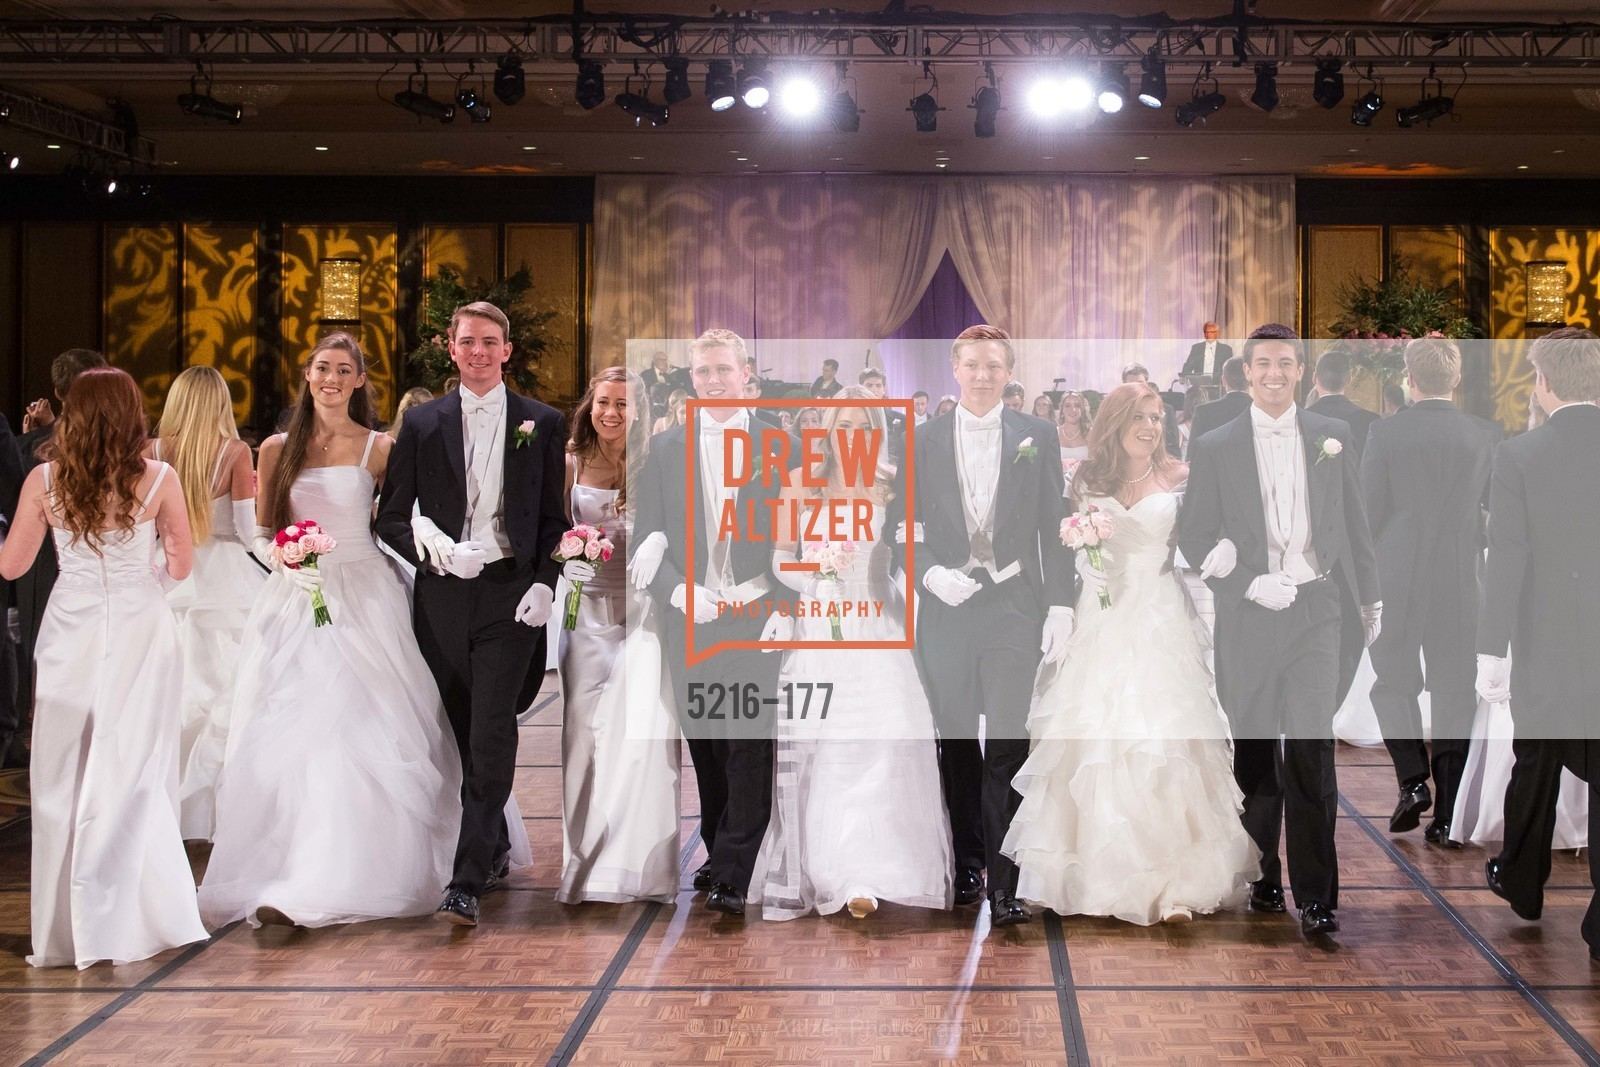 Madeleine Elizabeth Lamm, William HIbbard Dana III, Sarah Elisabeth Jackmauh, Luca Sullivan, Katherine Hamilton Harris, Luke Rosser Edwards, Allaire Houston Kruse, Daniel Conte, The 2015 San Francisco Debutante Ball, The Westin St. Francis San Francisco Union Square. 335 Powell St, June 20th, 2015,Drew Altizer, Drew Altizer Photography, full-service agency, private events, San Francisco photographer, photographer california